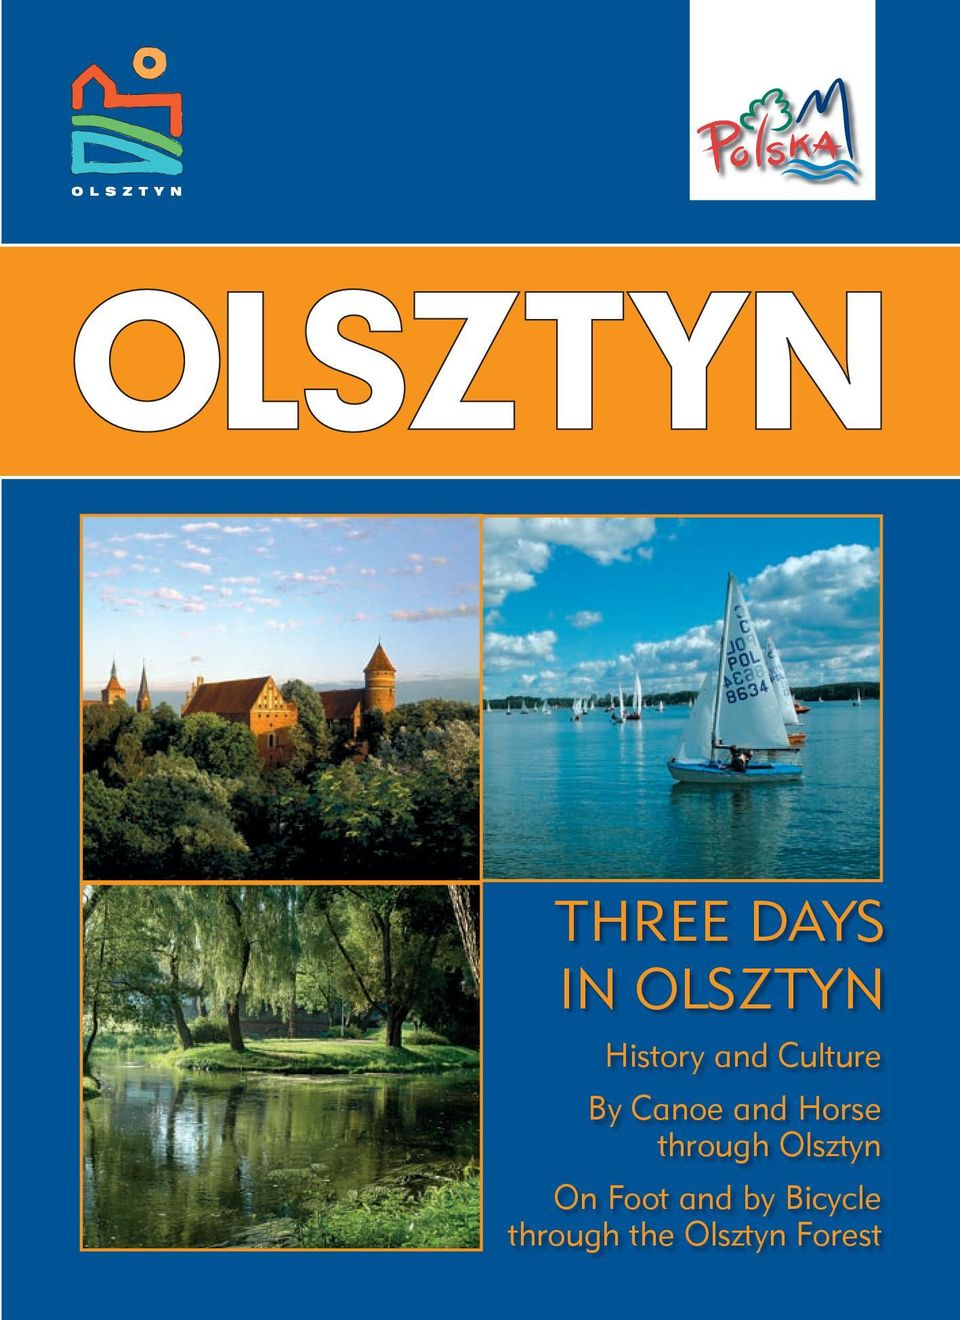 through Olsztyn On Foot and by